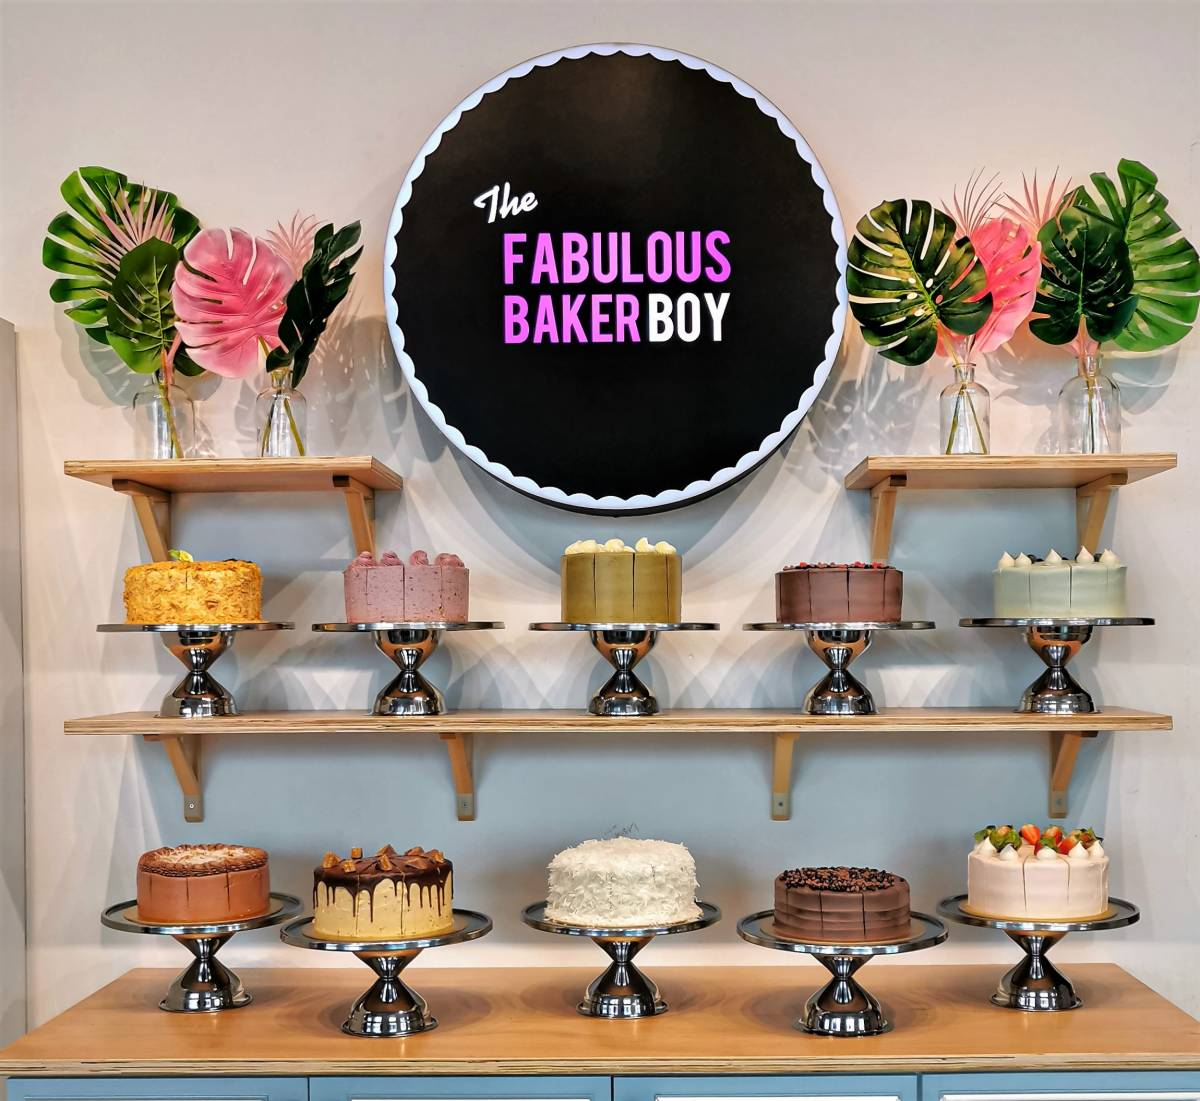 The Fabulous Baker Boy Re-Opens at Aliwal Arts Centre